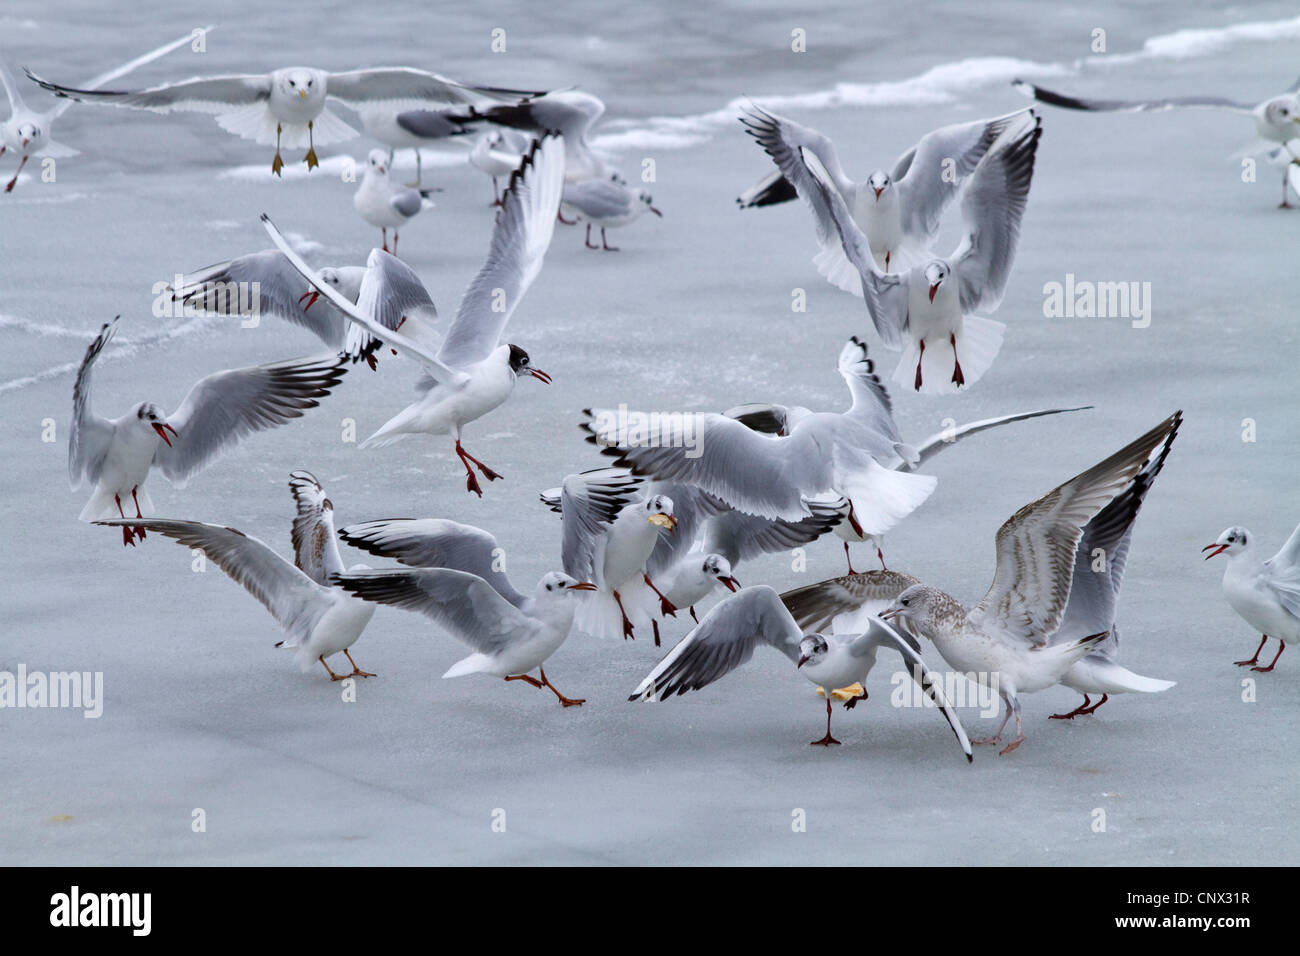 black-headed gull (Larus ridibundus), flock fight over food on frozen lake surface, Germany, Bavaria, Chiemsee - Stock Image